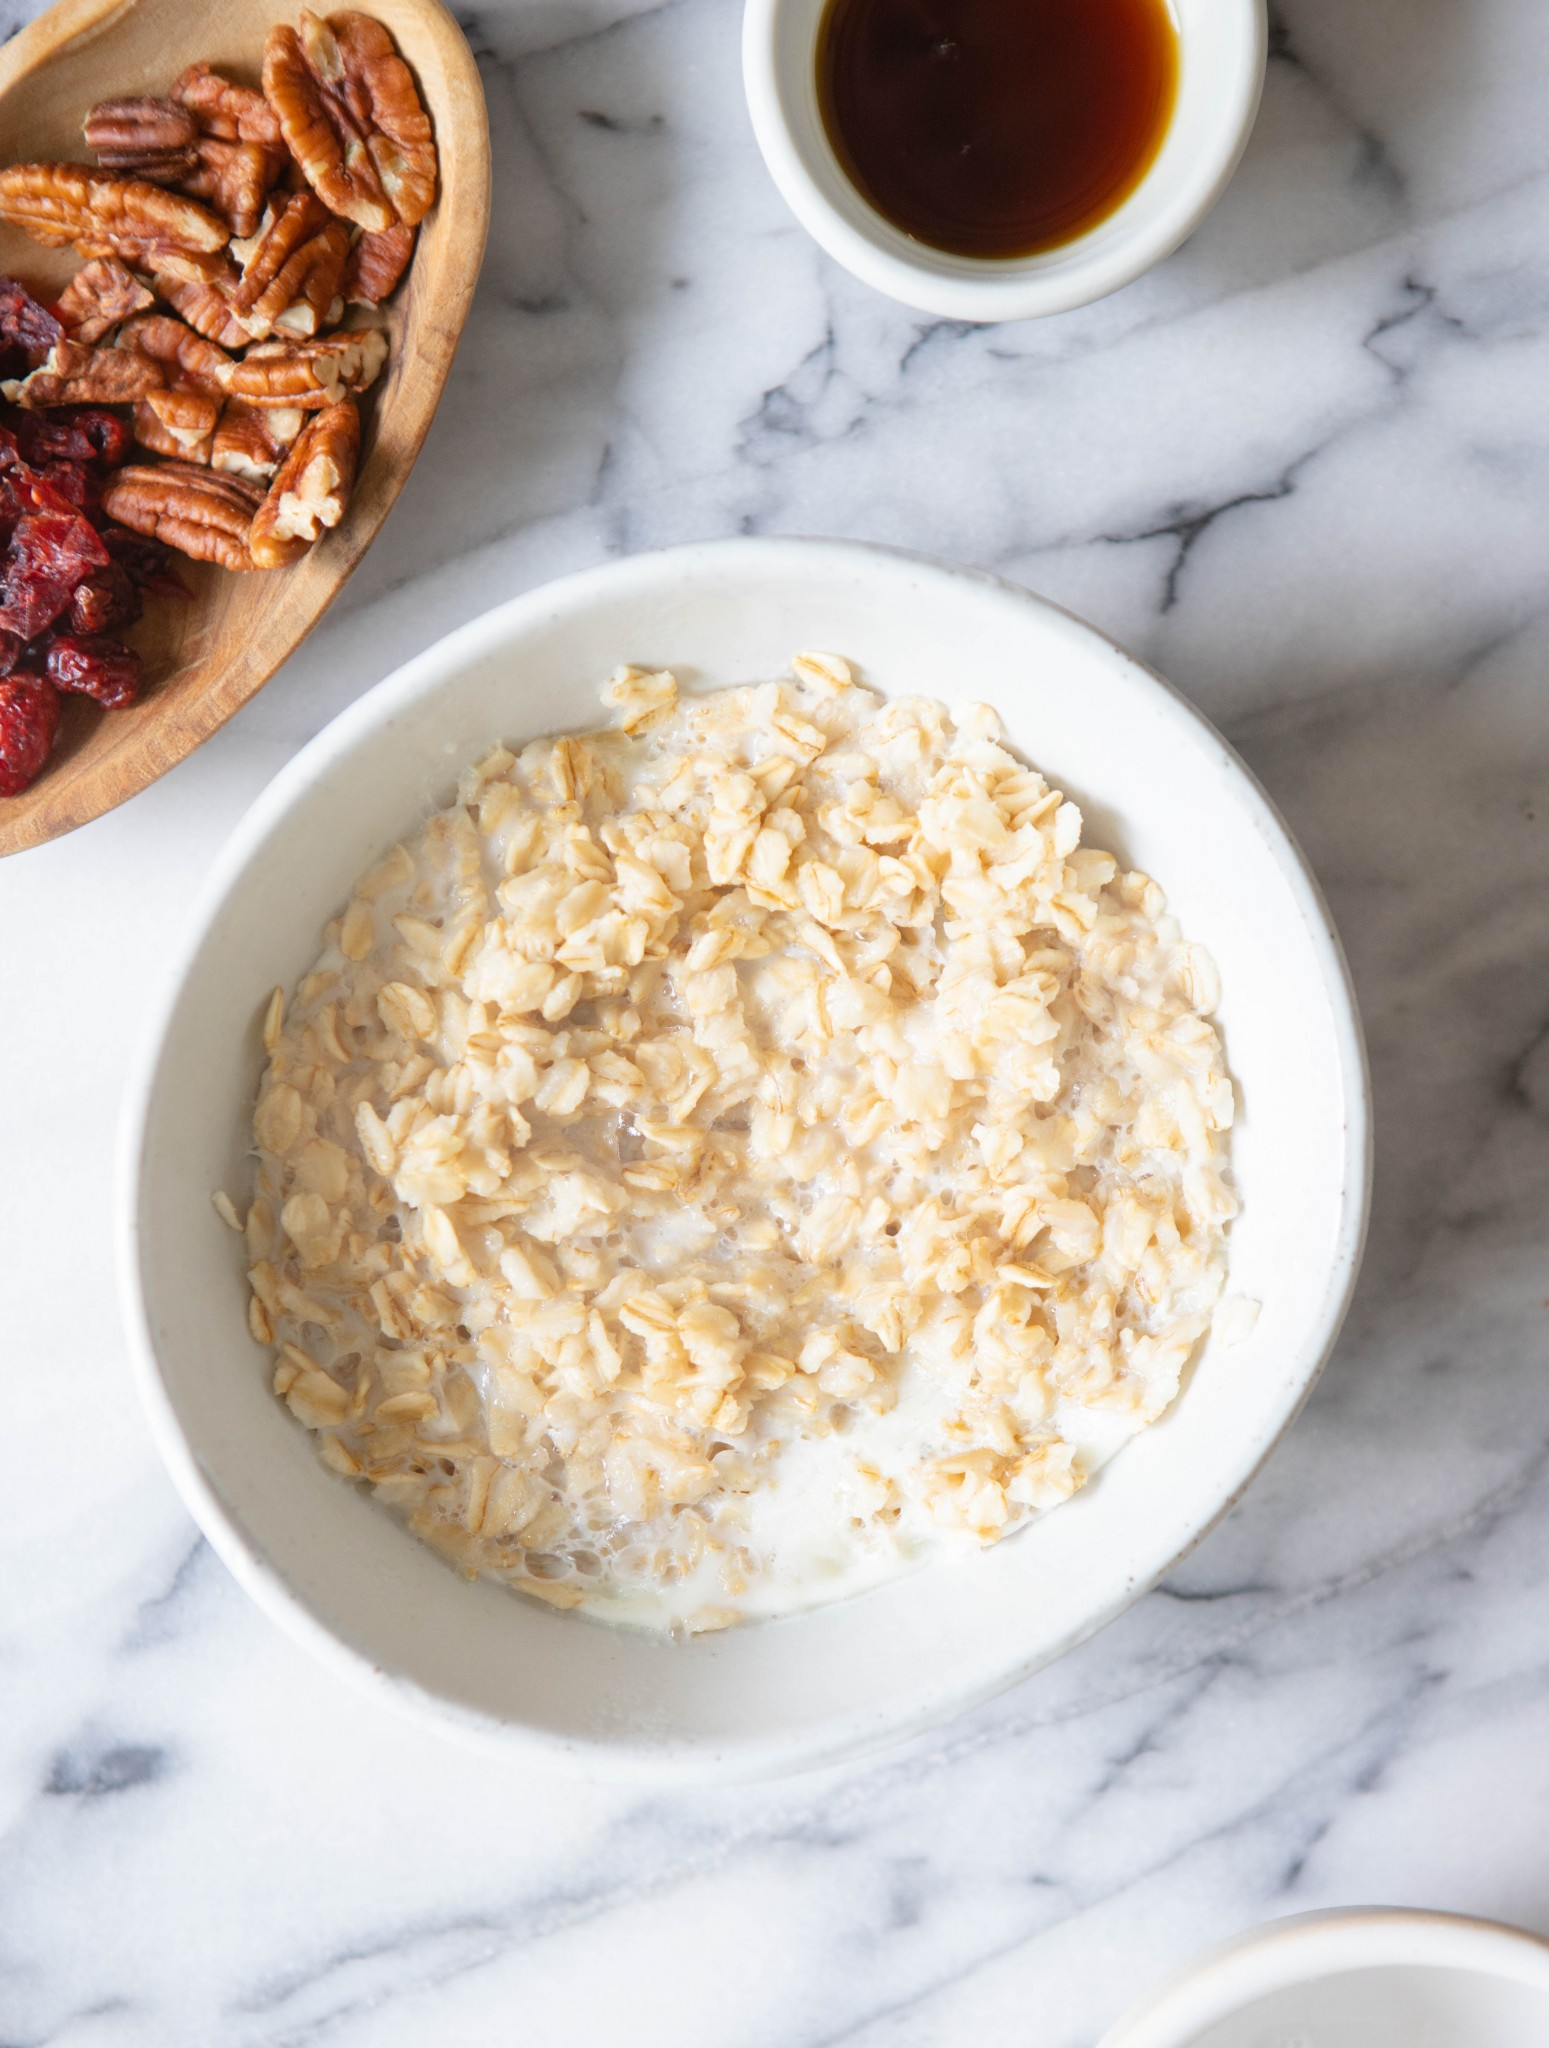 cooked oatmeal in a white bowl